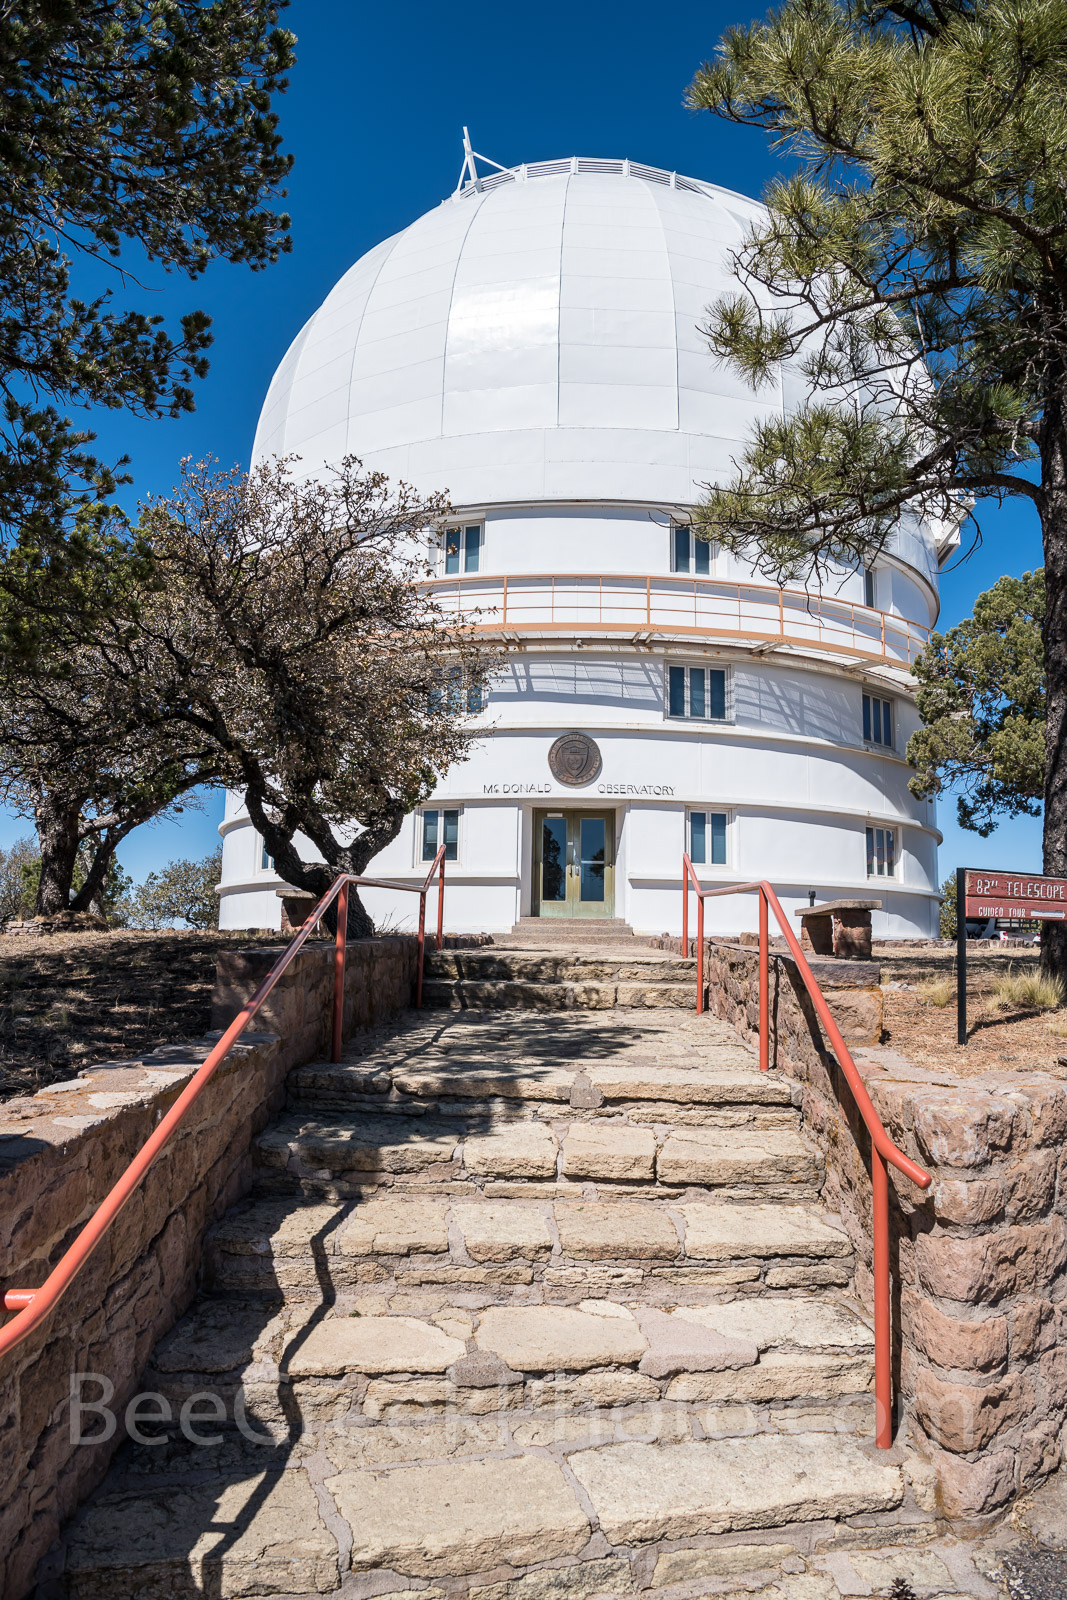 Otto Struve Telescope, Mount Locke, Mt Locke, Davis Mountains, Fort Davis, UT, Mcdonald observatory, 